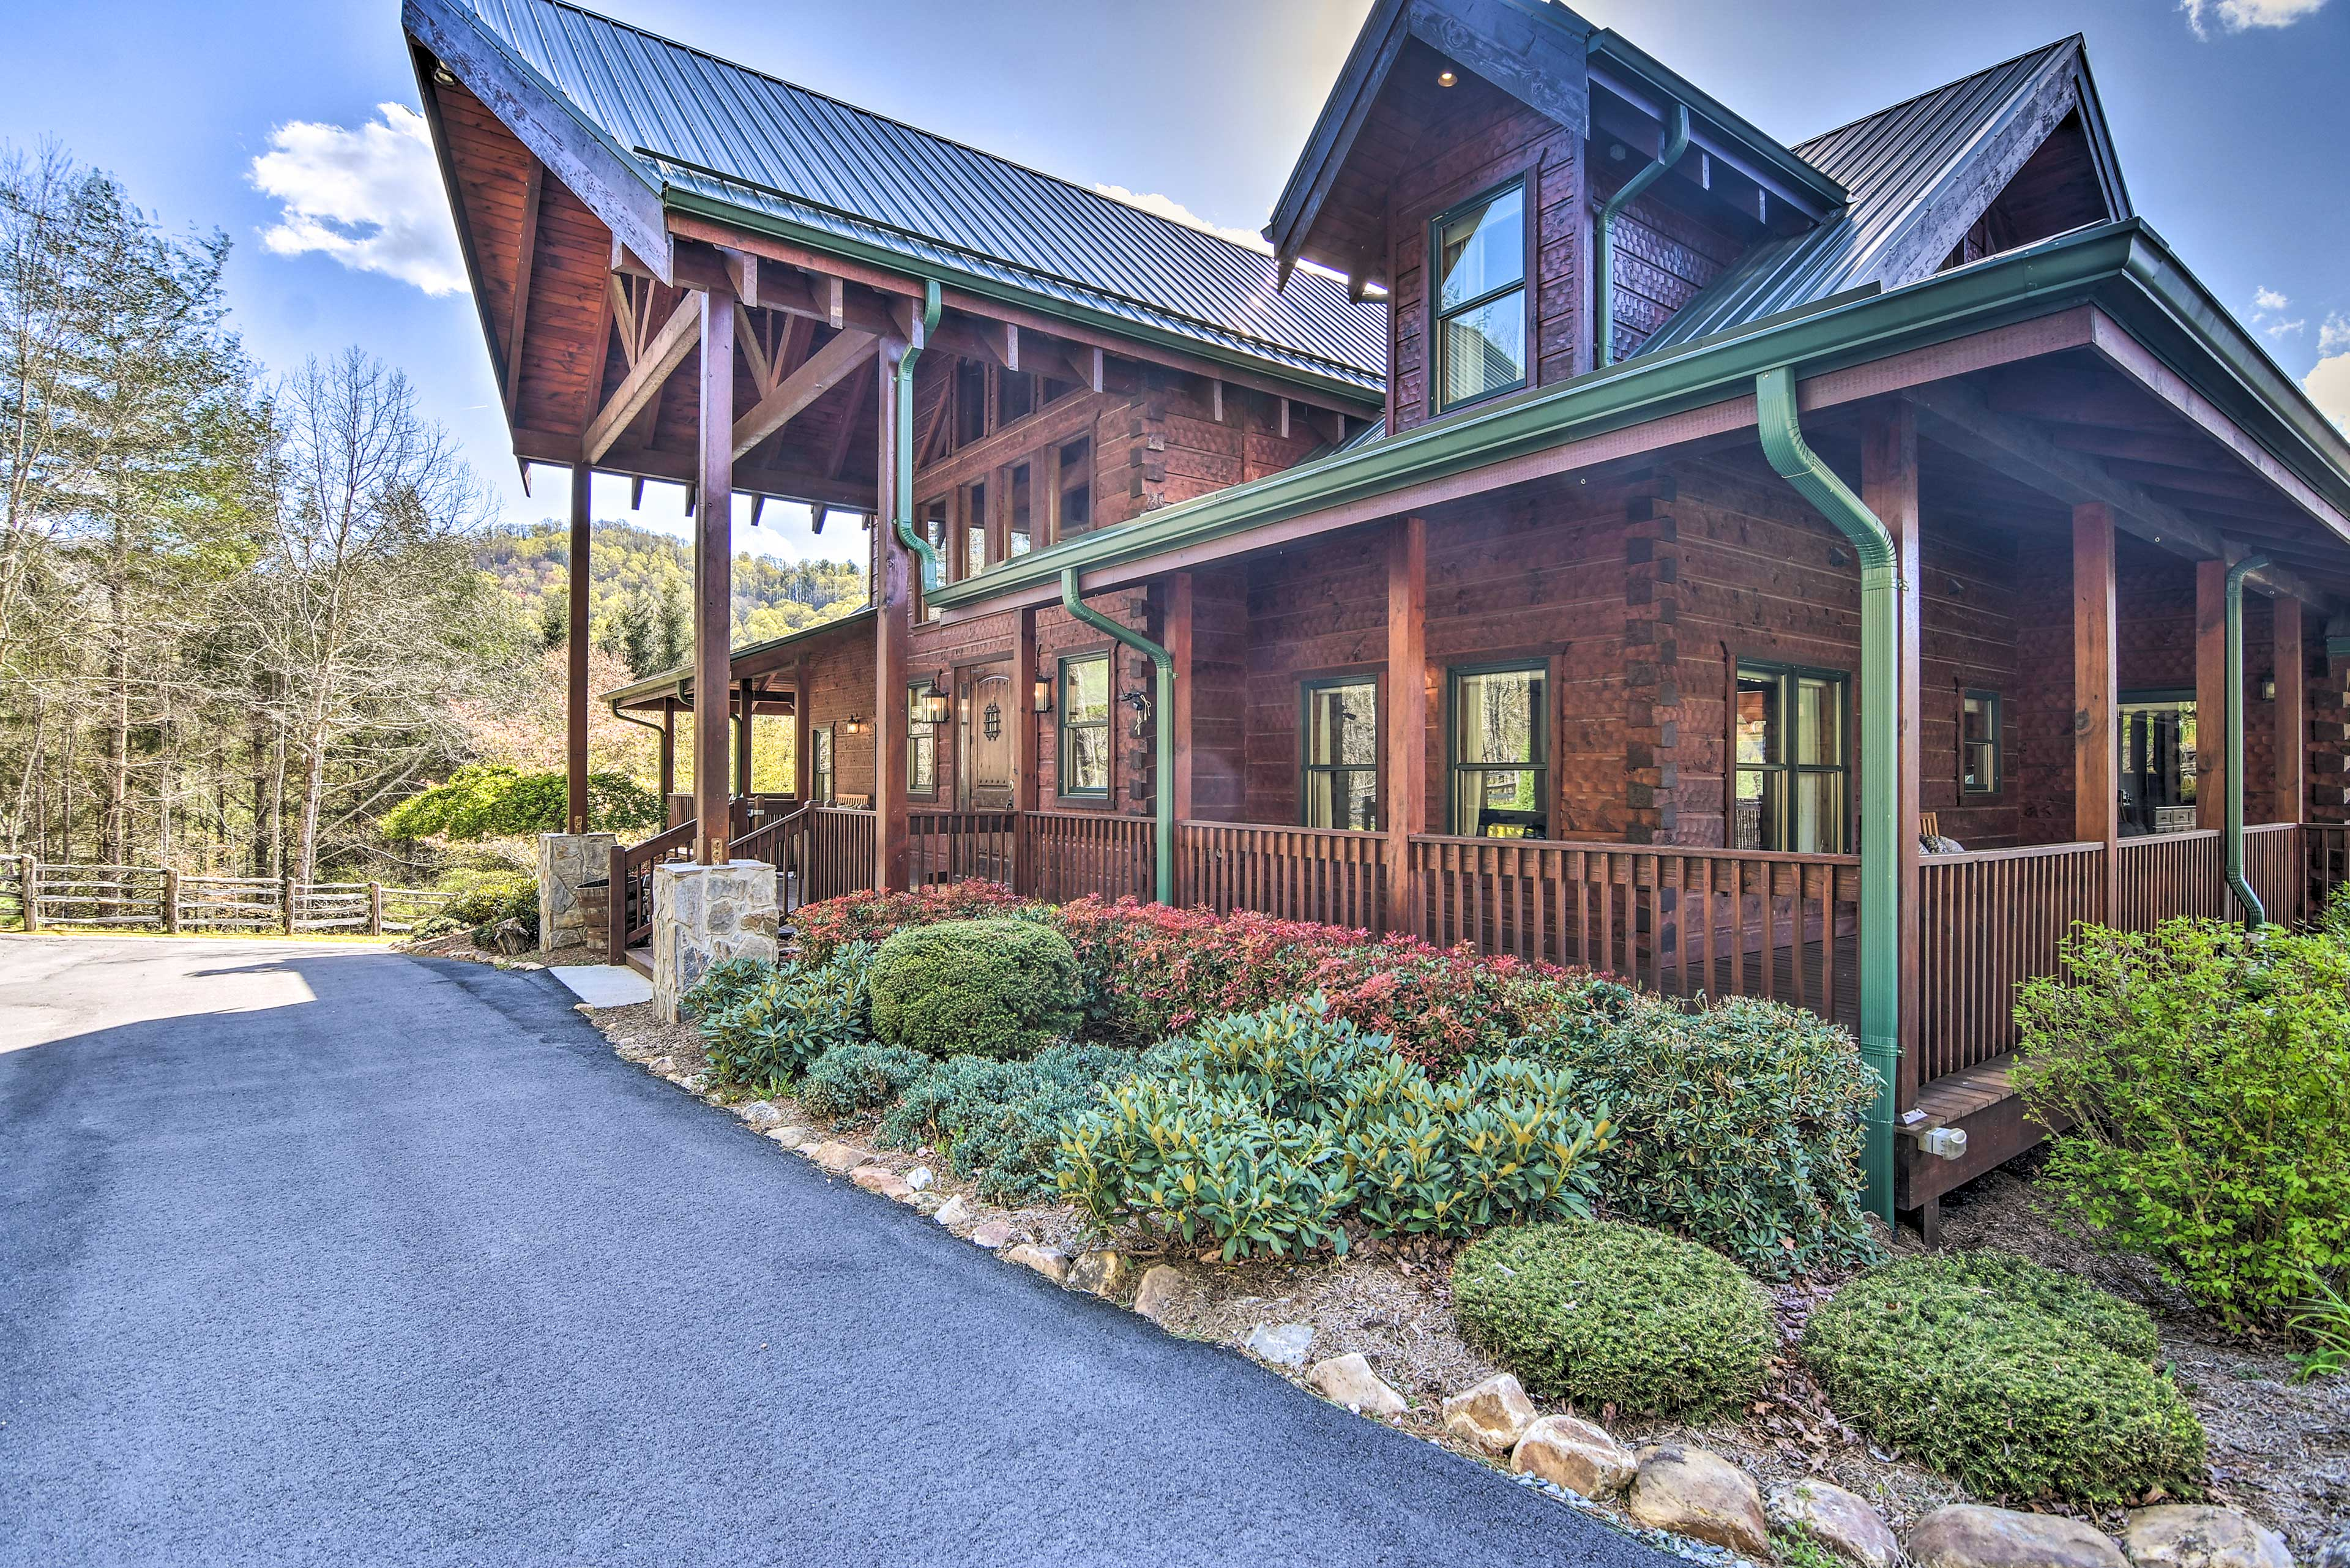 This upscale vacation rental boasts a chic cabin-like atmosphere.